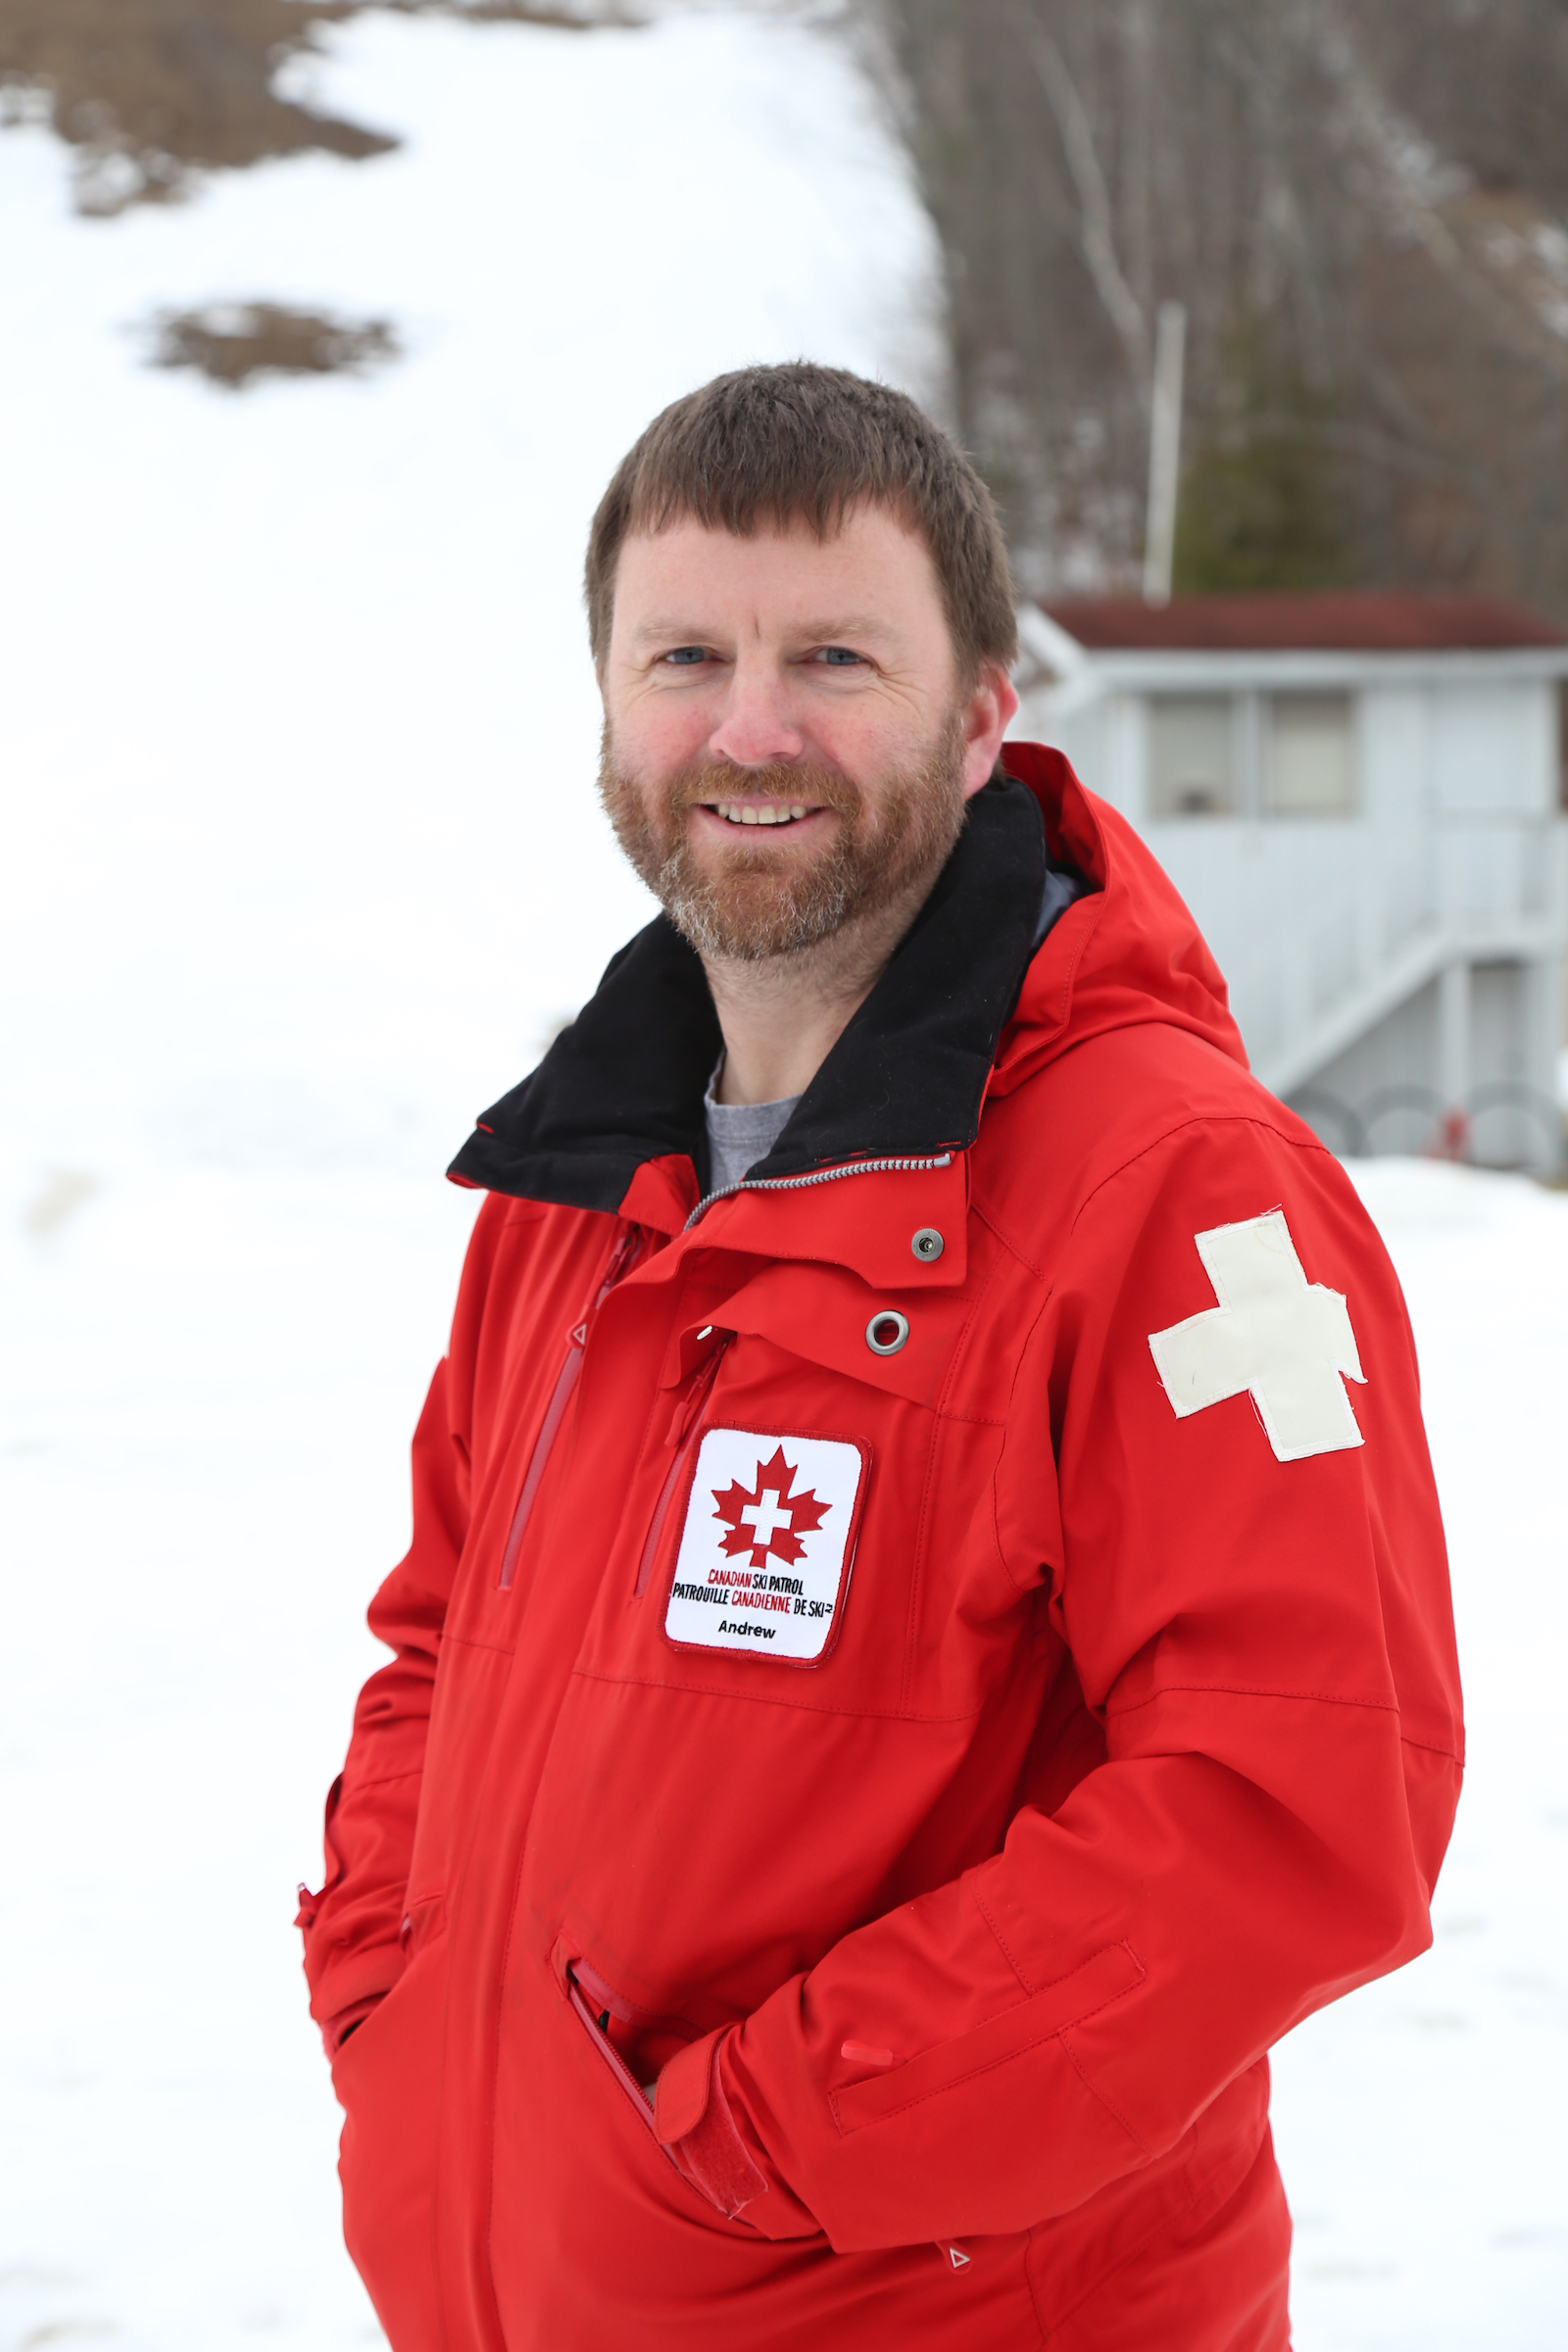 A ski patrol staff member poses in front of a snowy ski hill wearing a red parka with medical insignia. He smiles at the camera.